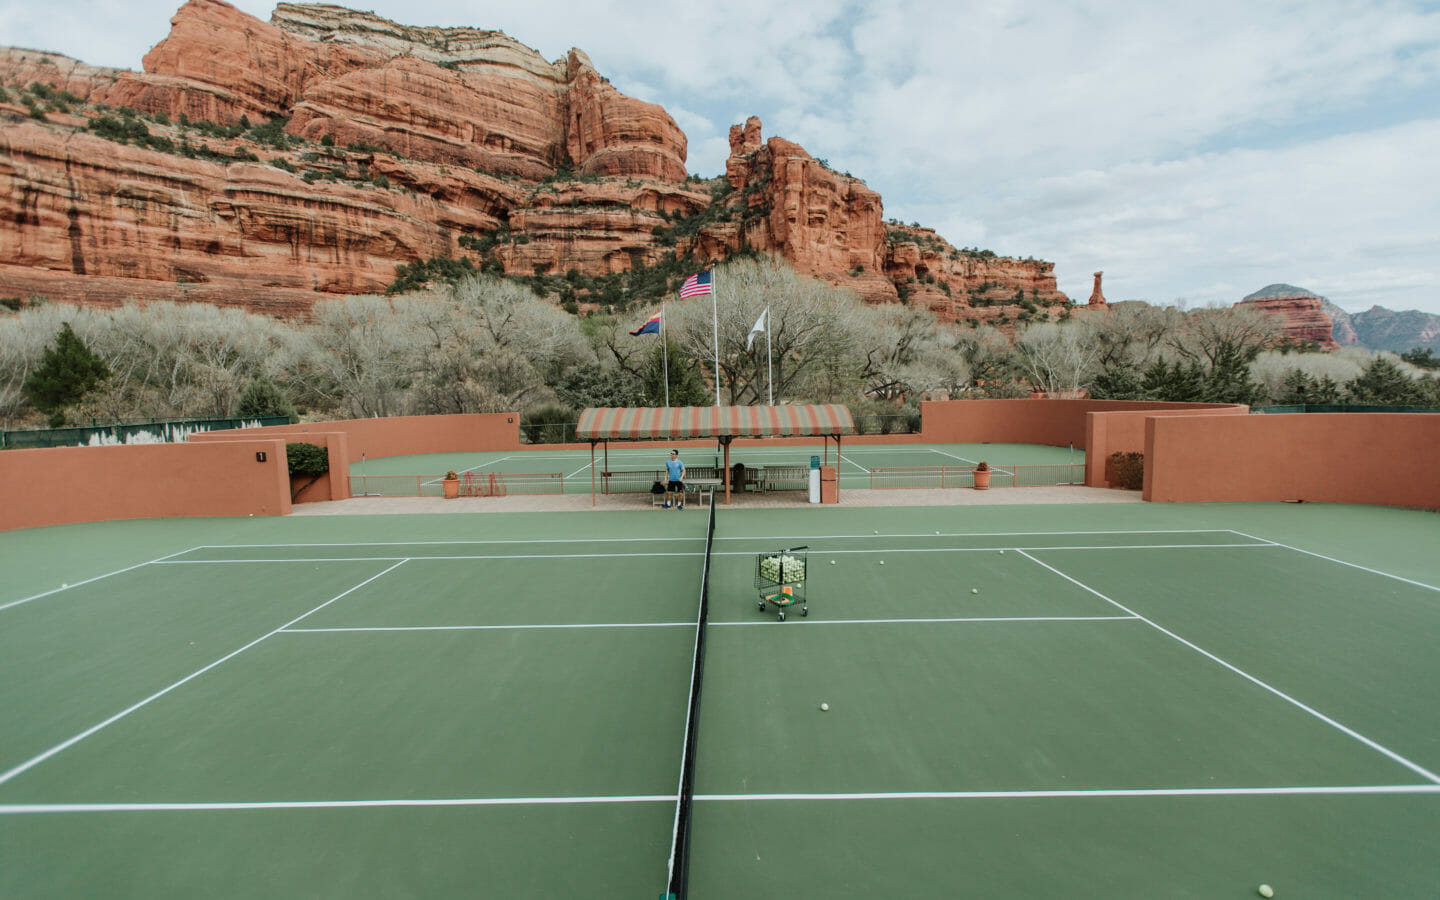 Tennis courts in Sedona | Enchantment Resort